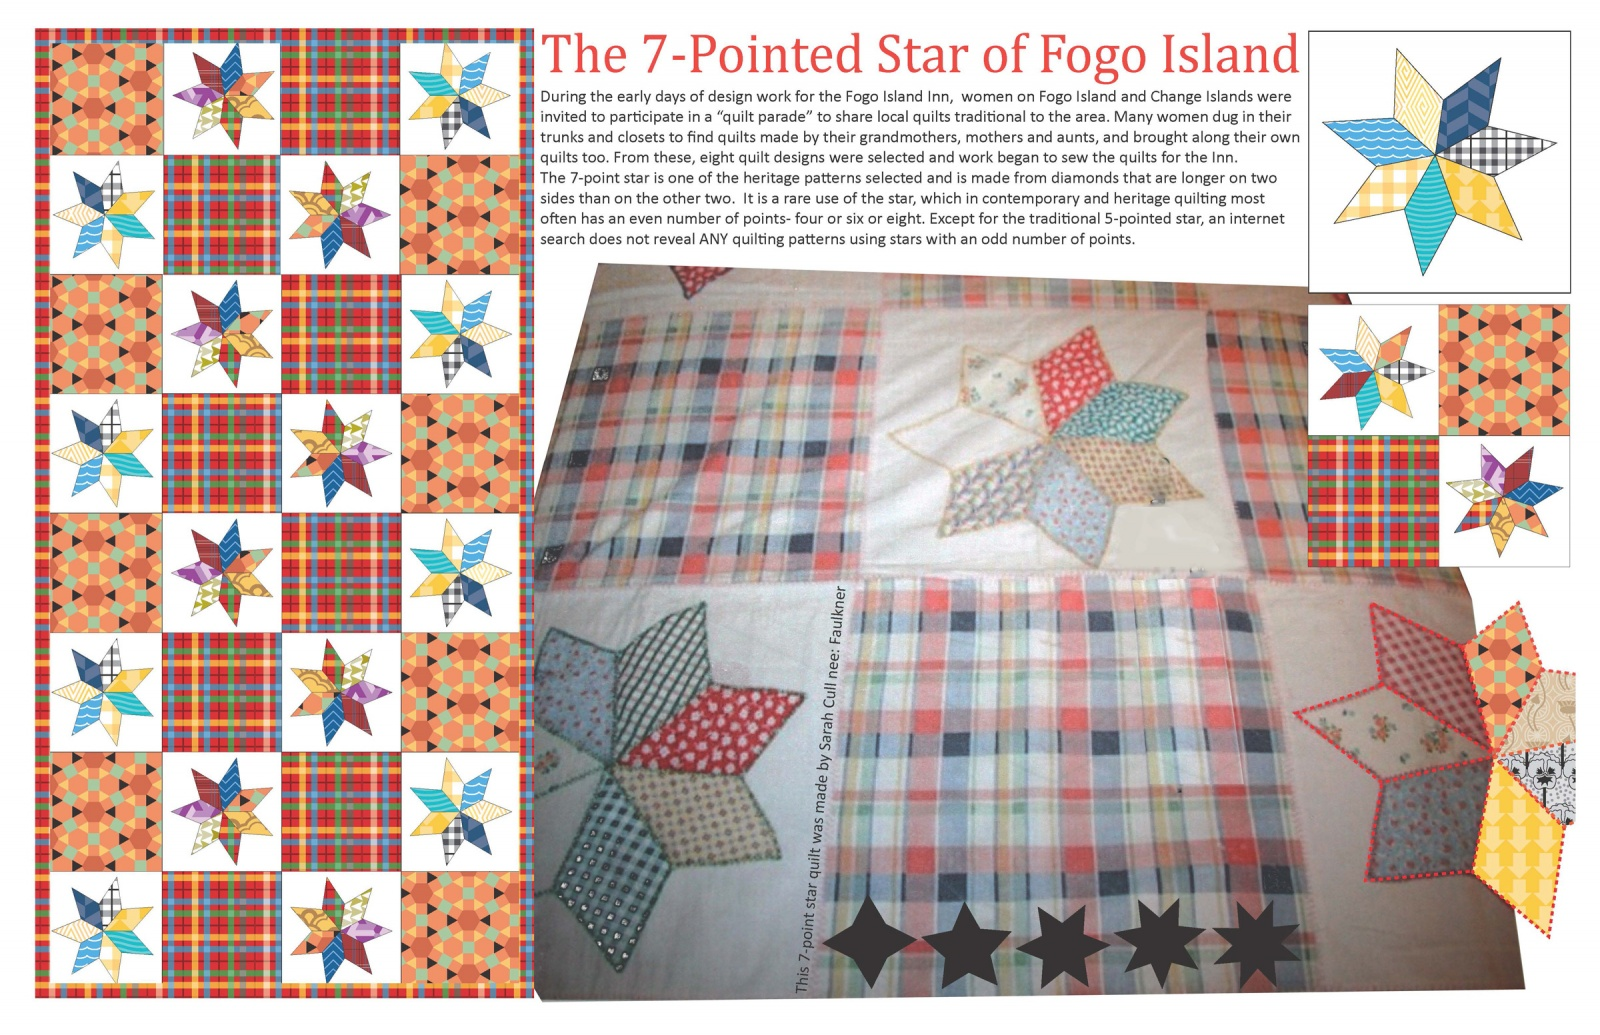 The 7-Pointed Star of Fogo Island